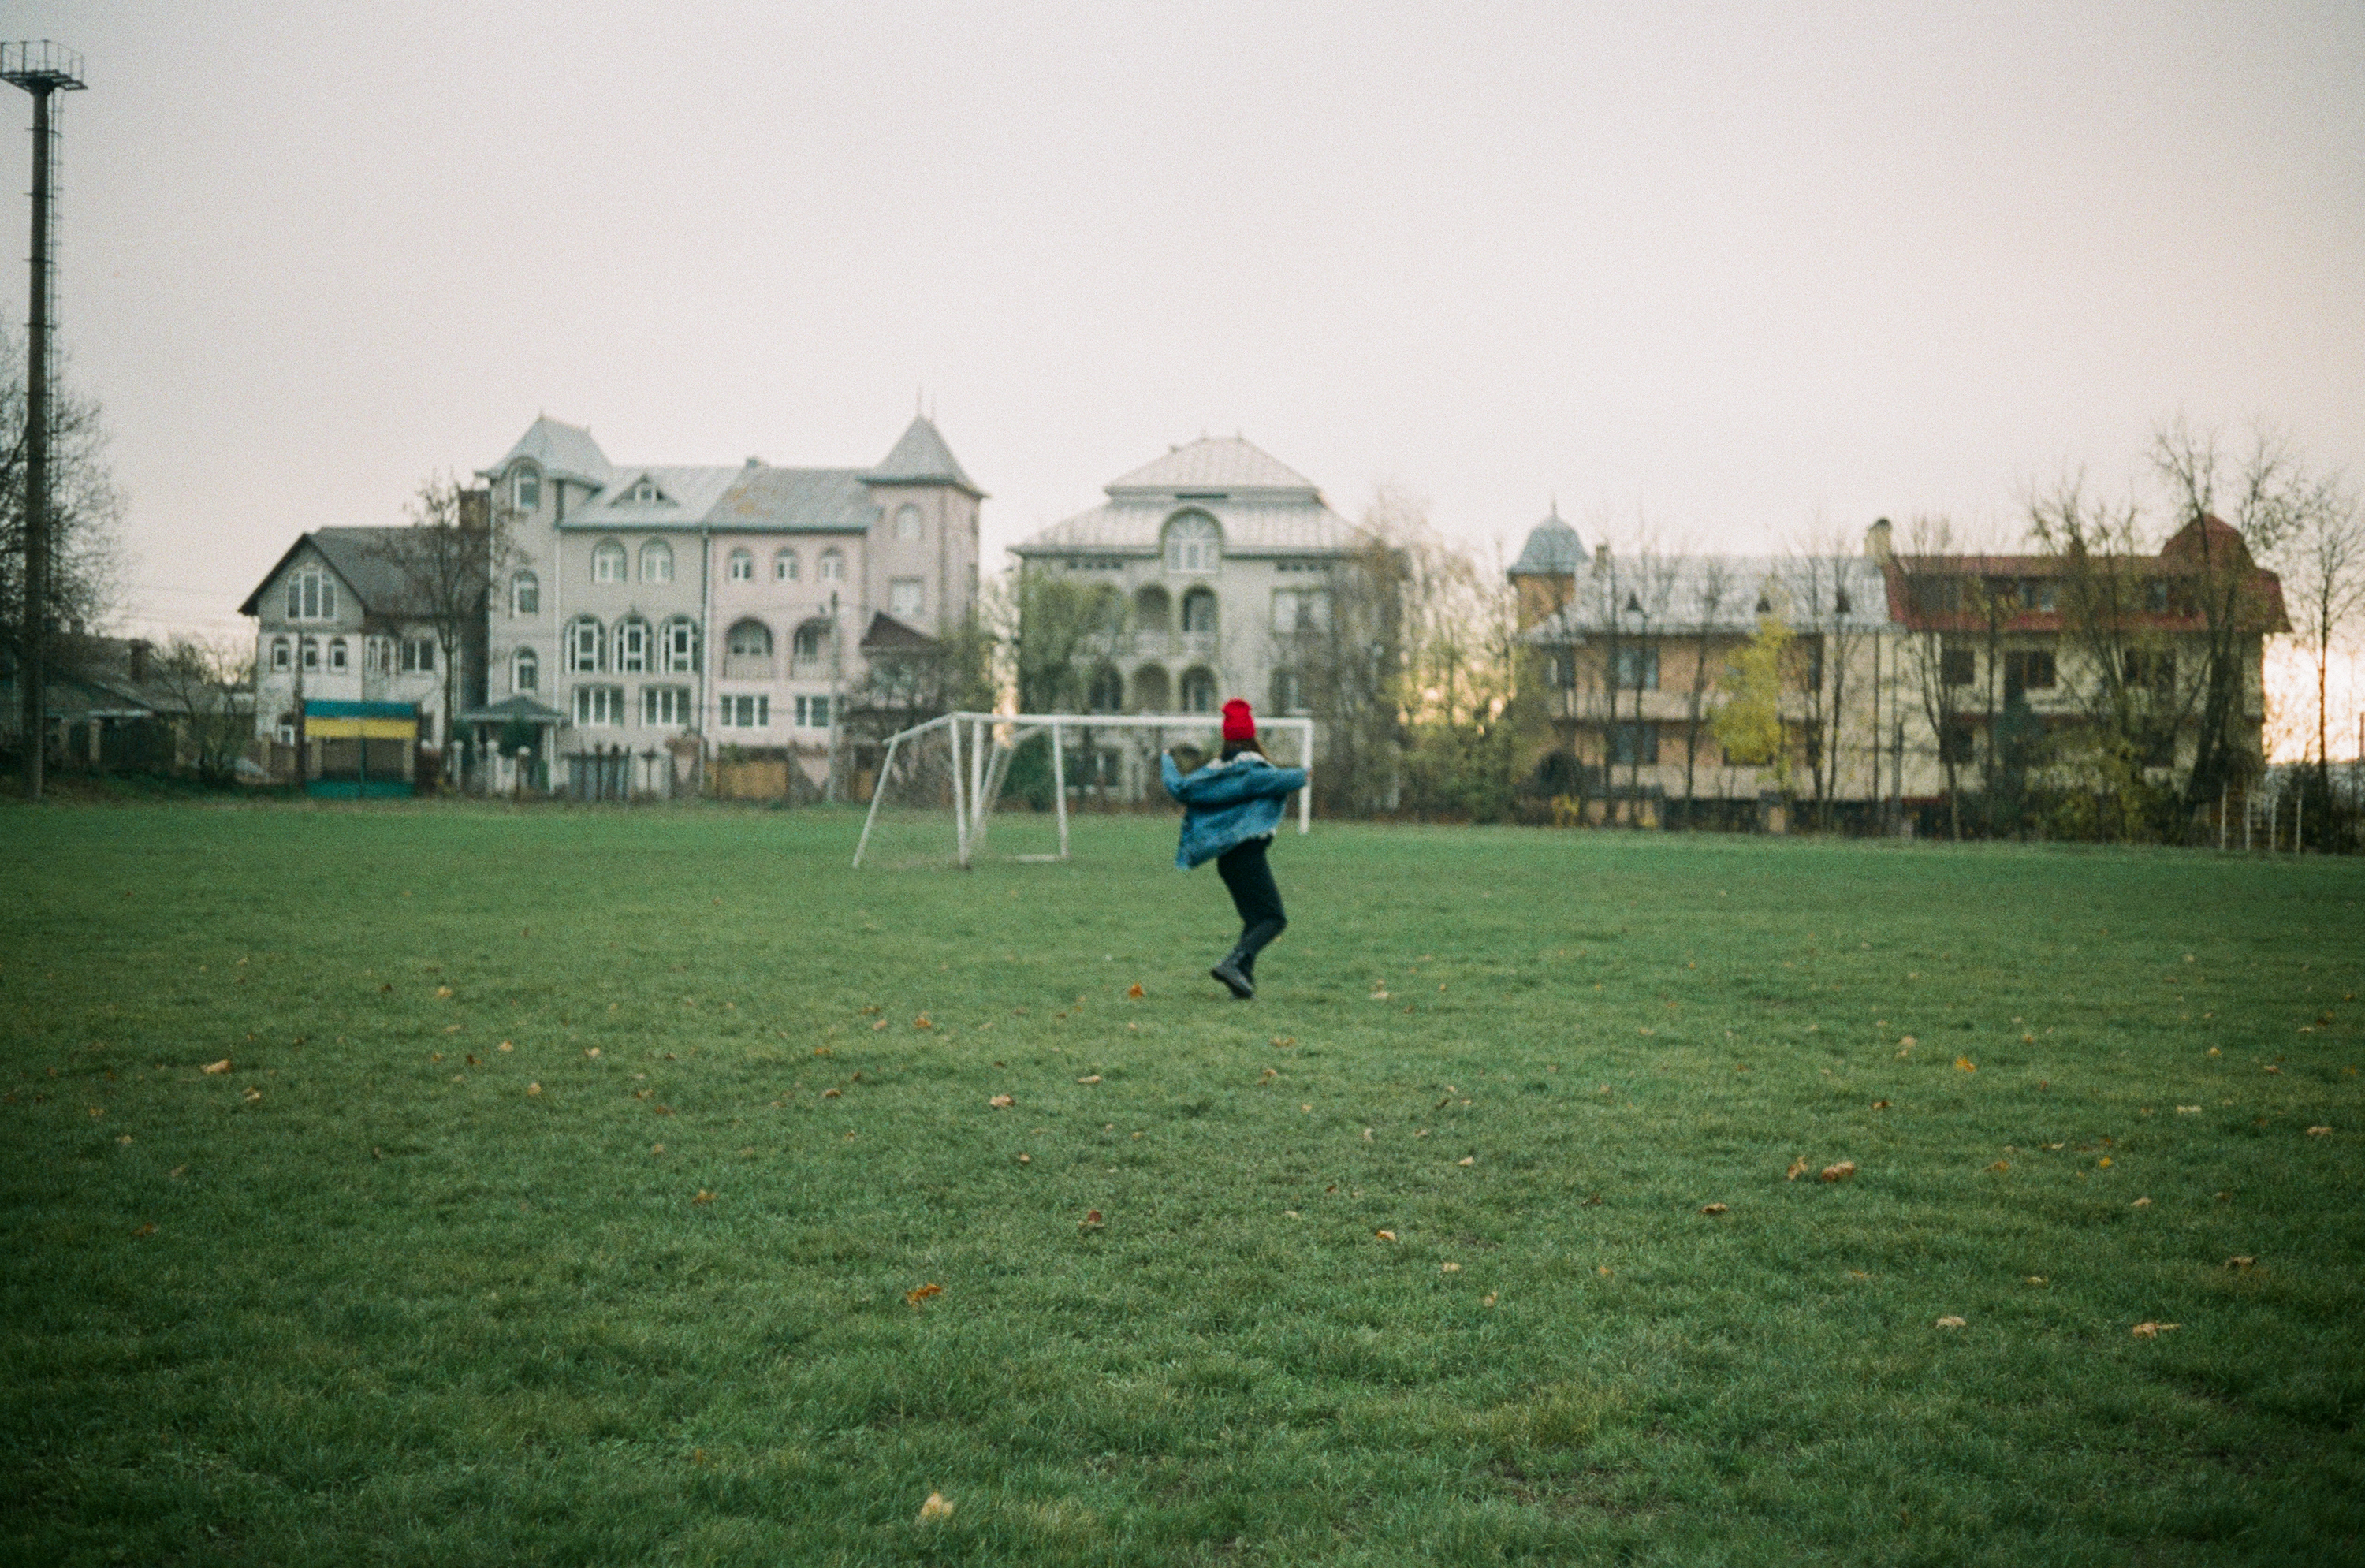 man in blue jacket and black pants walking on green grass field during daytime